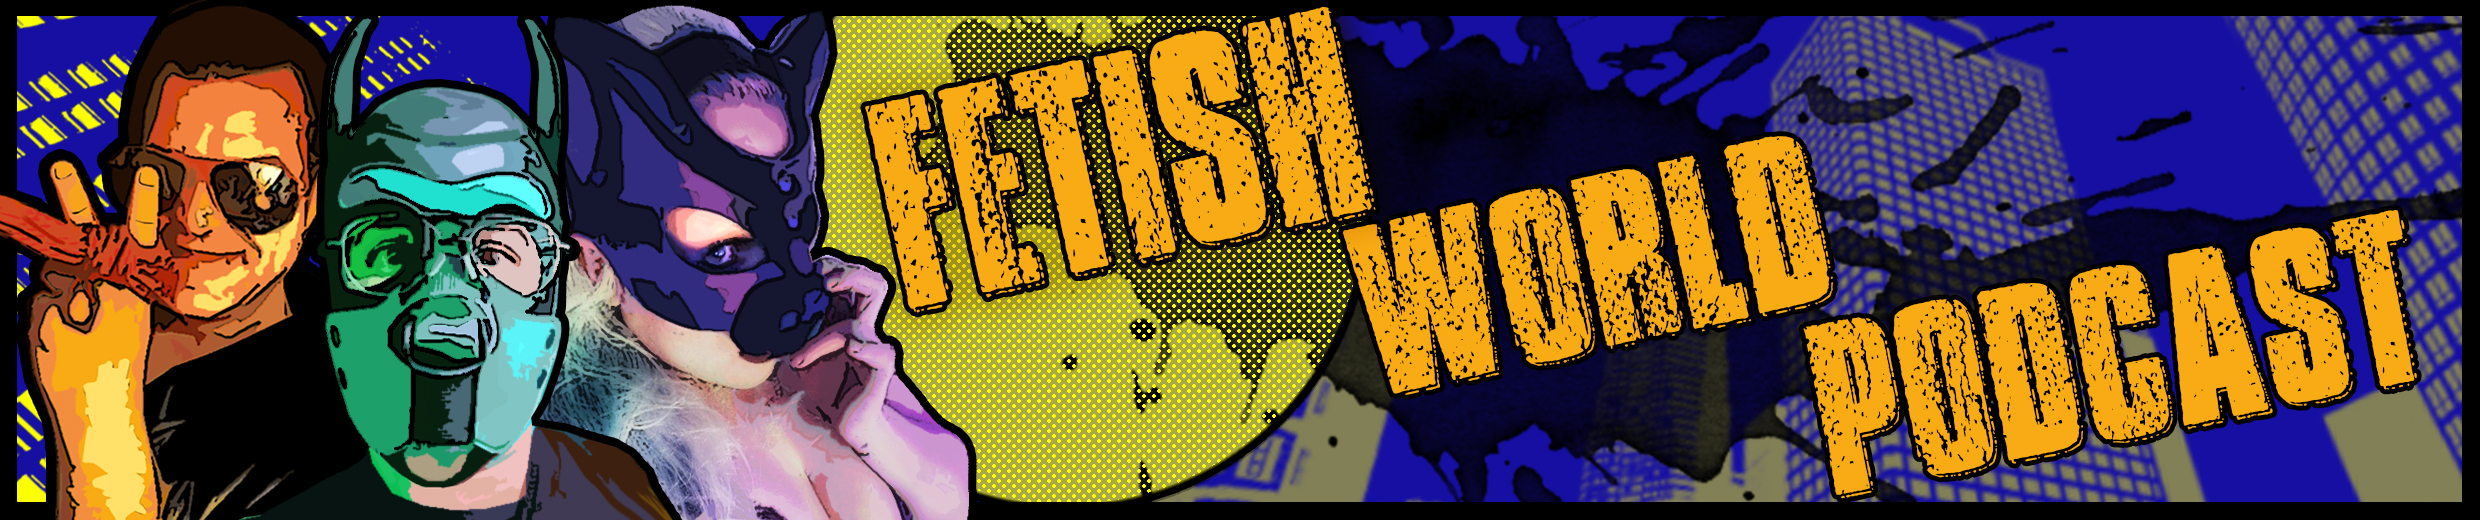 Fetish World Podcast